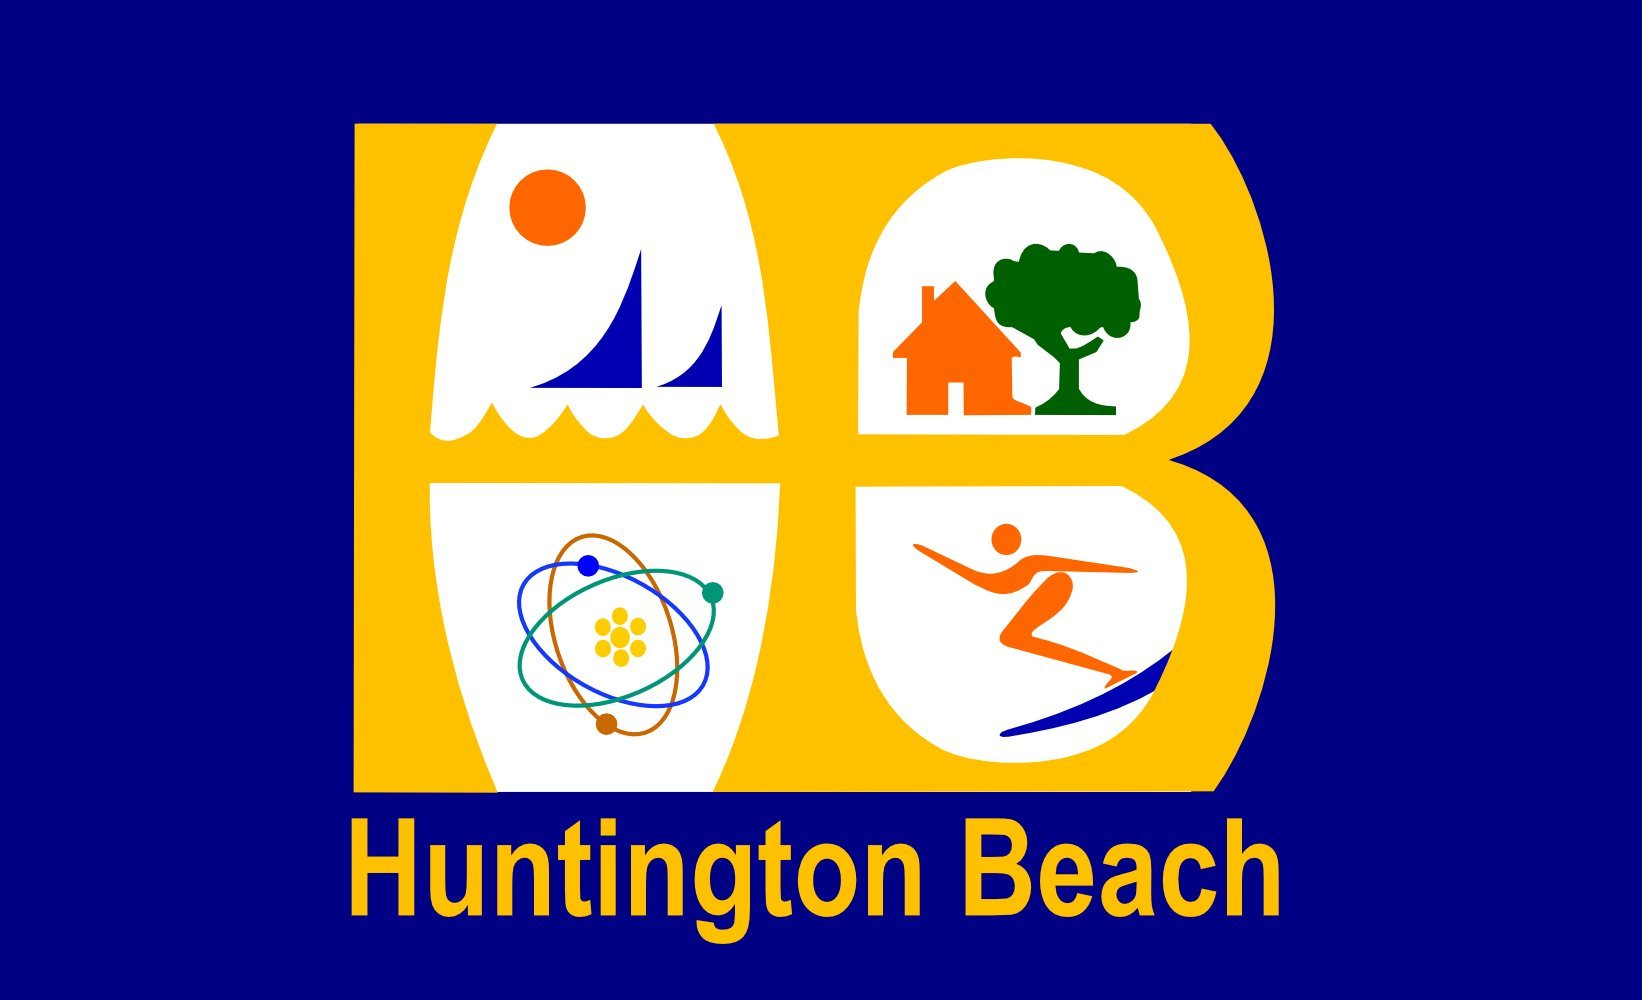 magFlags Large Flag Huntington Beach, California | Huntington Beach City | Landscape Flag | 1.35m² | 14.5sqft | 90x150cm | 3x5ft - 100% Made in Germany - Long Lasting Outdoor Flag